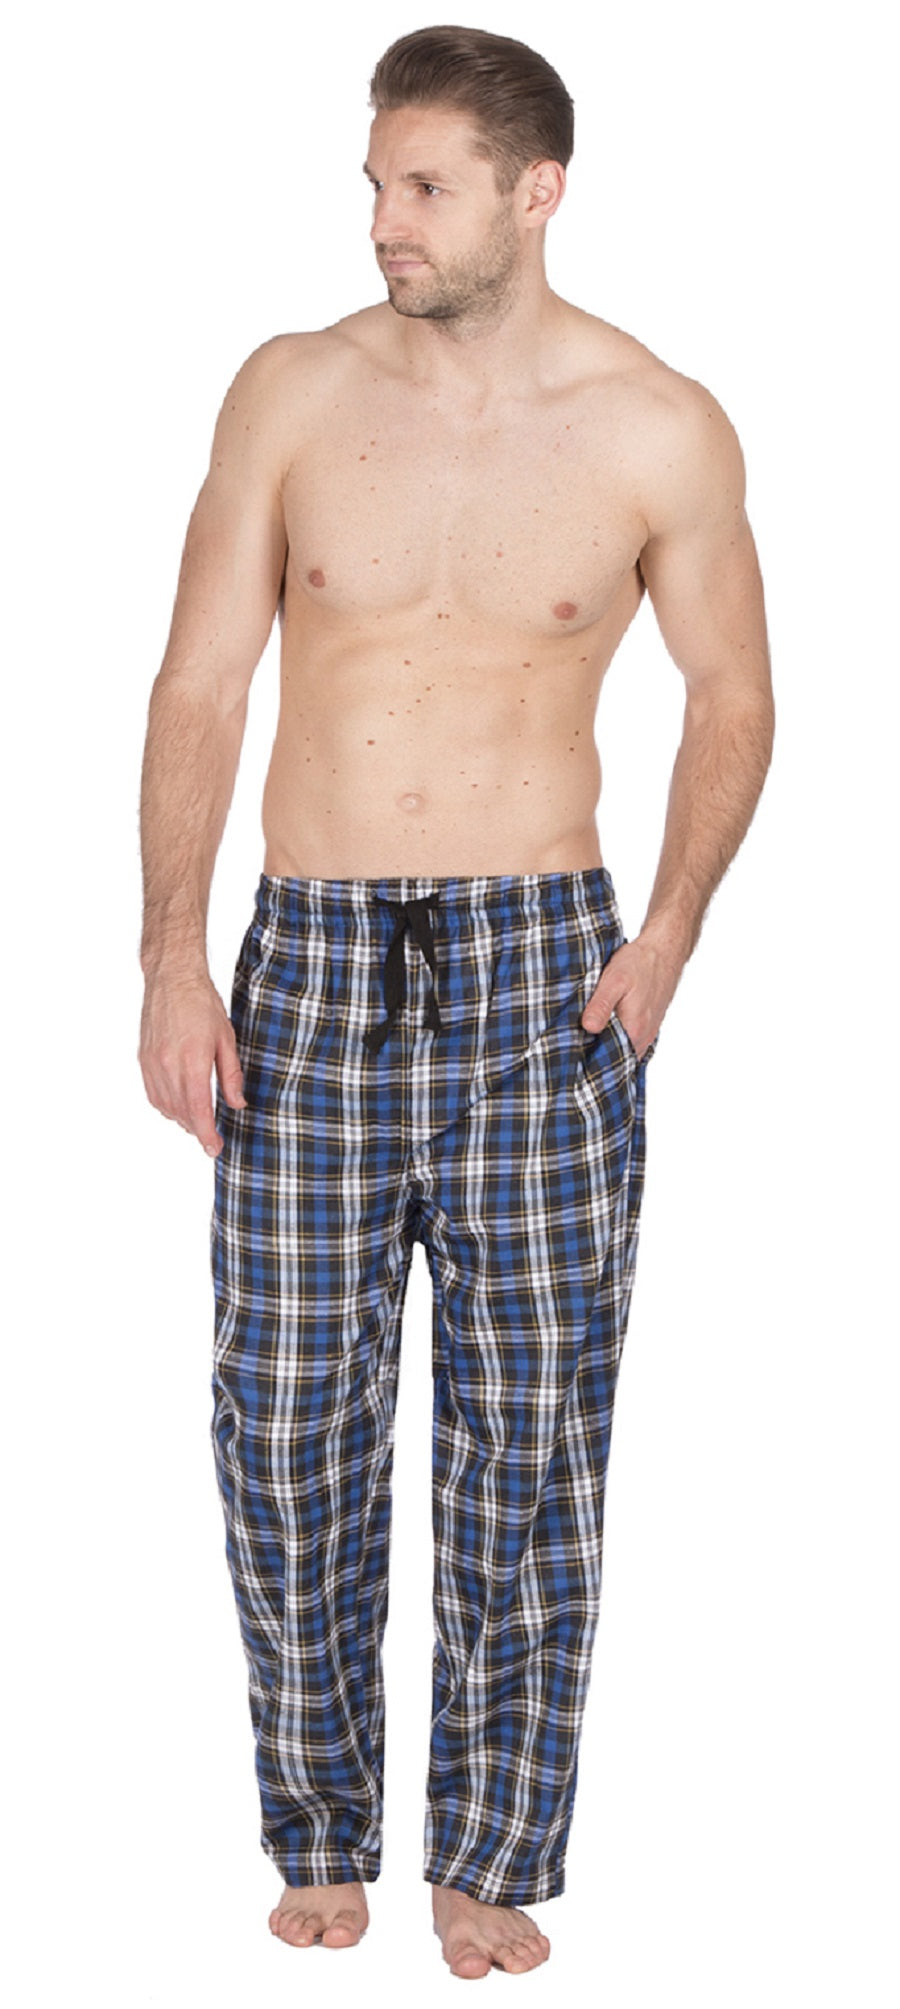 OCTAVE Mens Woven Poly Cotton Checked Tartan Loungewear Pants Pyjama Bottoms